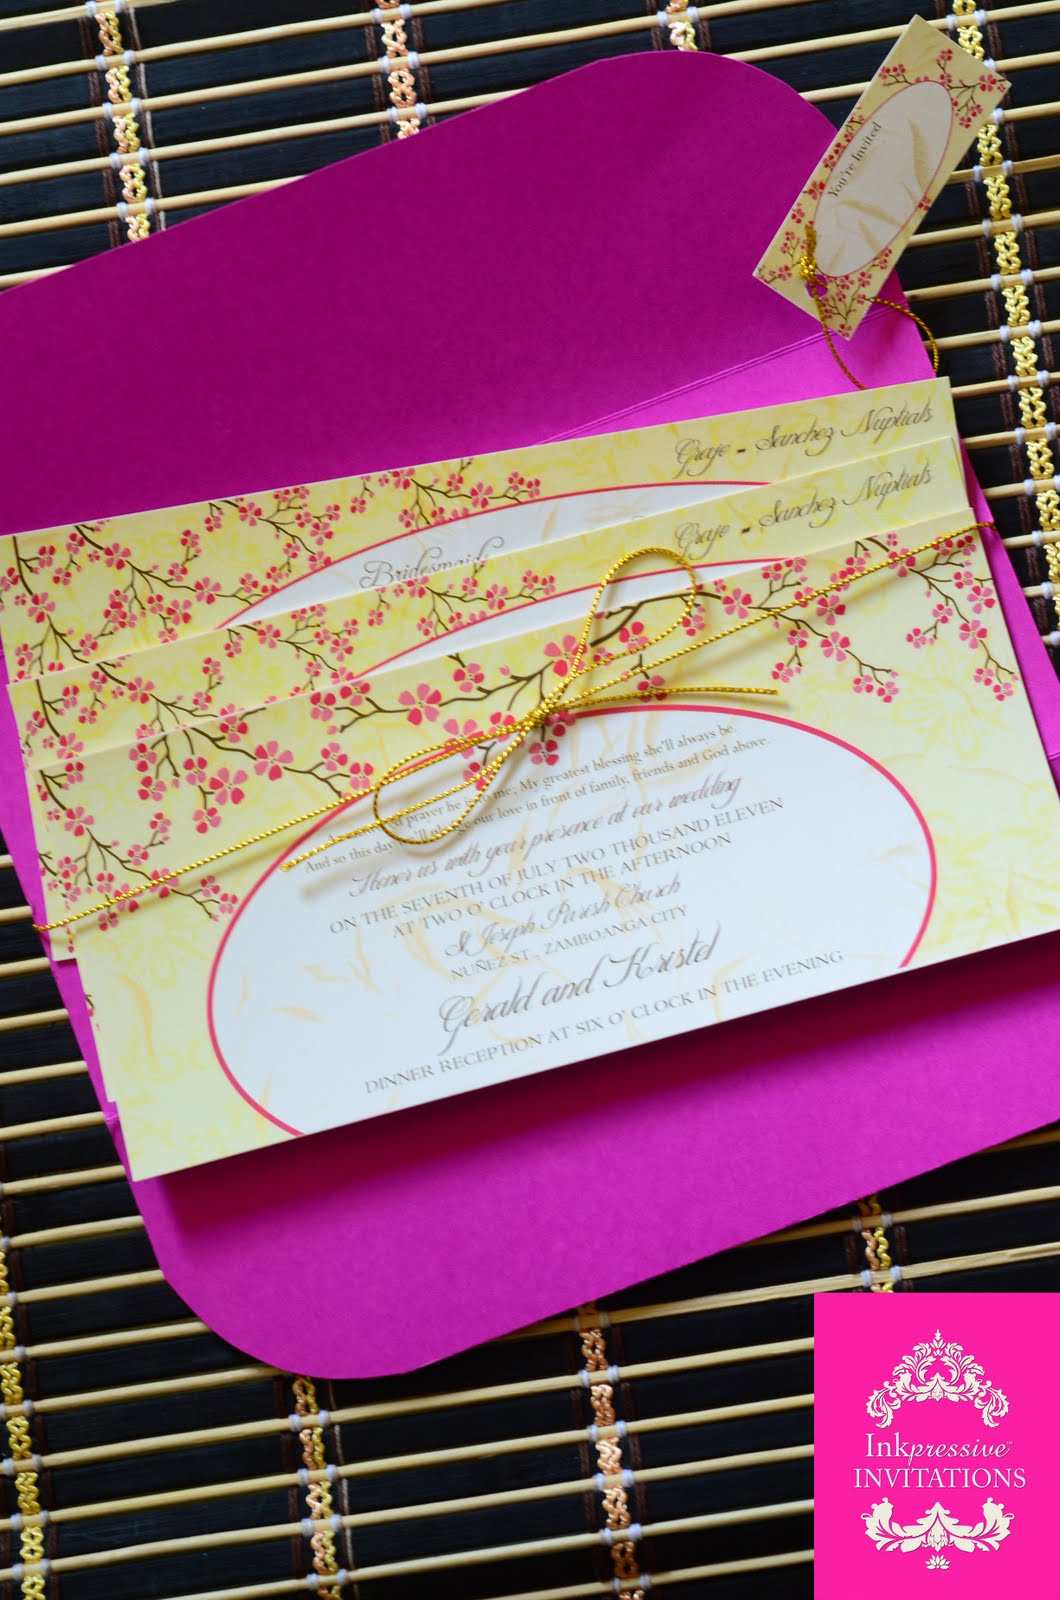 Cherry Blossom Themed Wedding Invitation Inkpressive Invitations